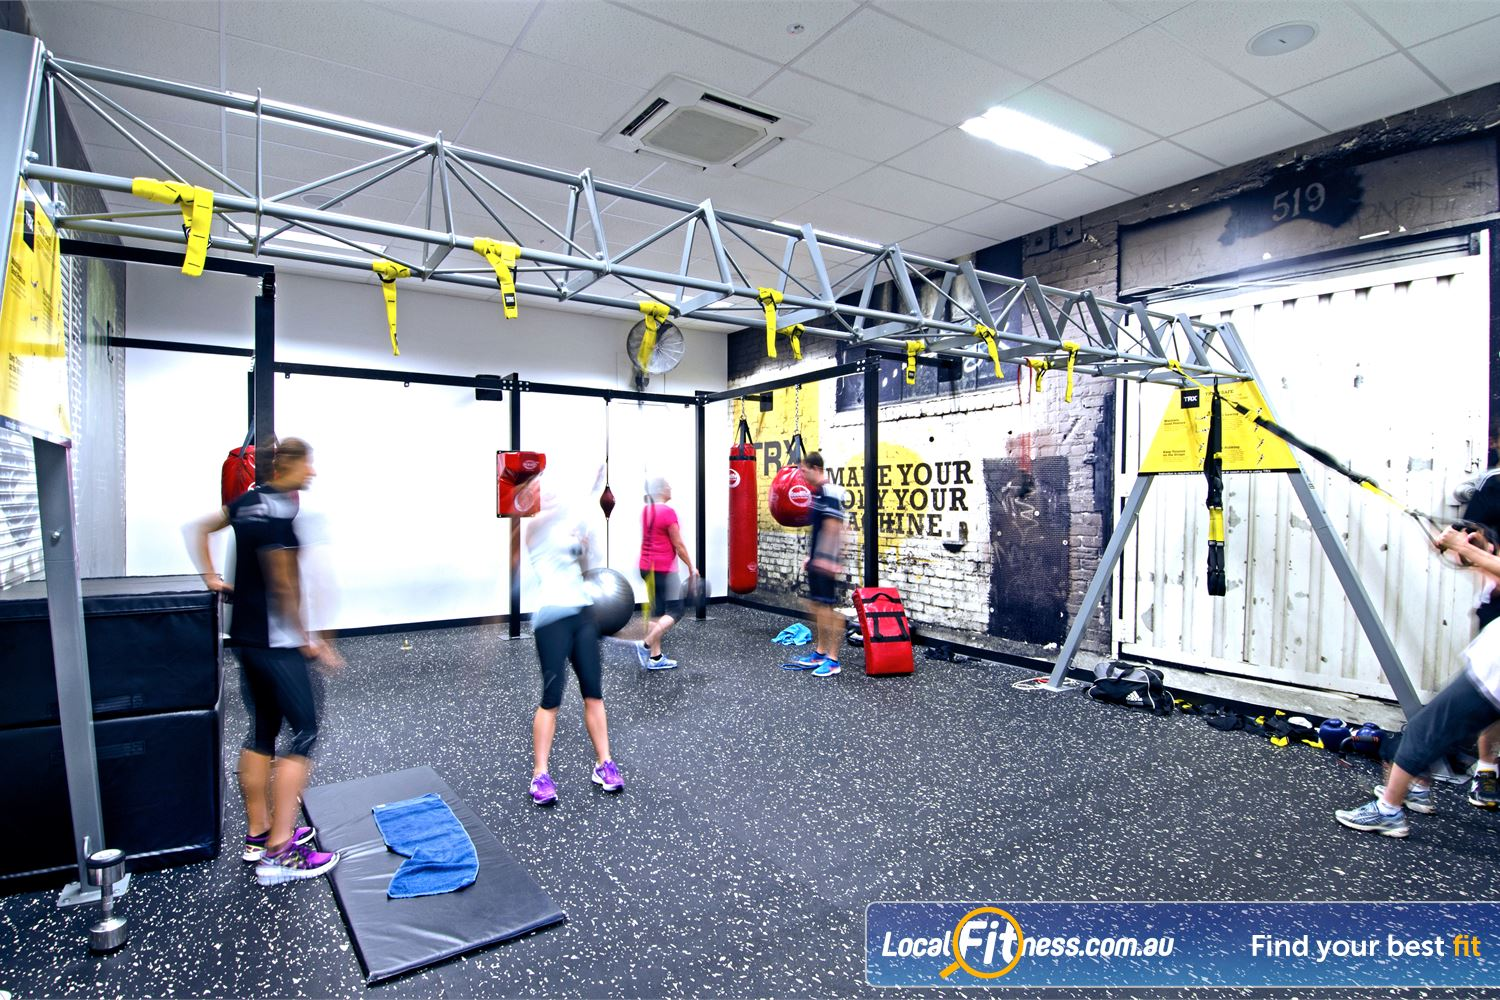 Goodlife Health Clubs Graceville The spacious functional training space at Goodlife Graceville.